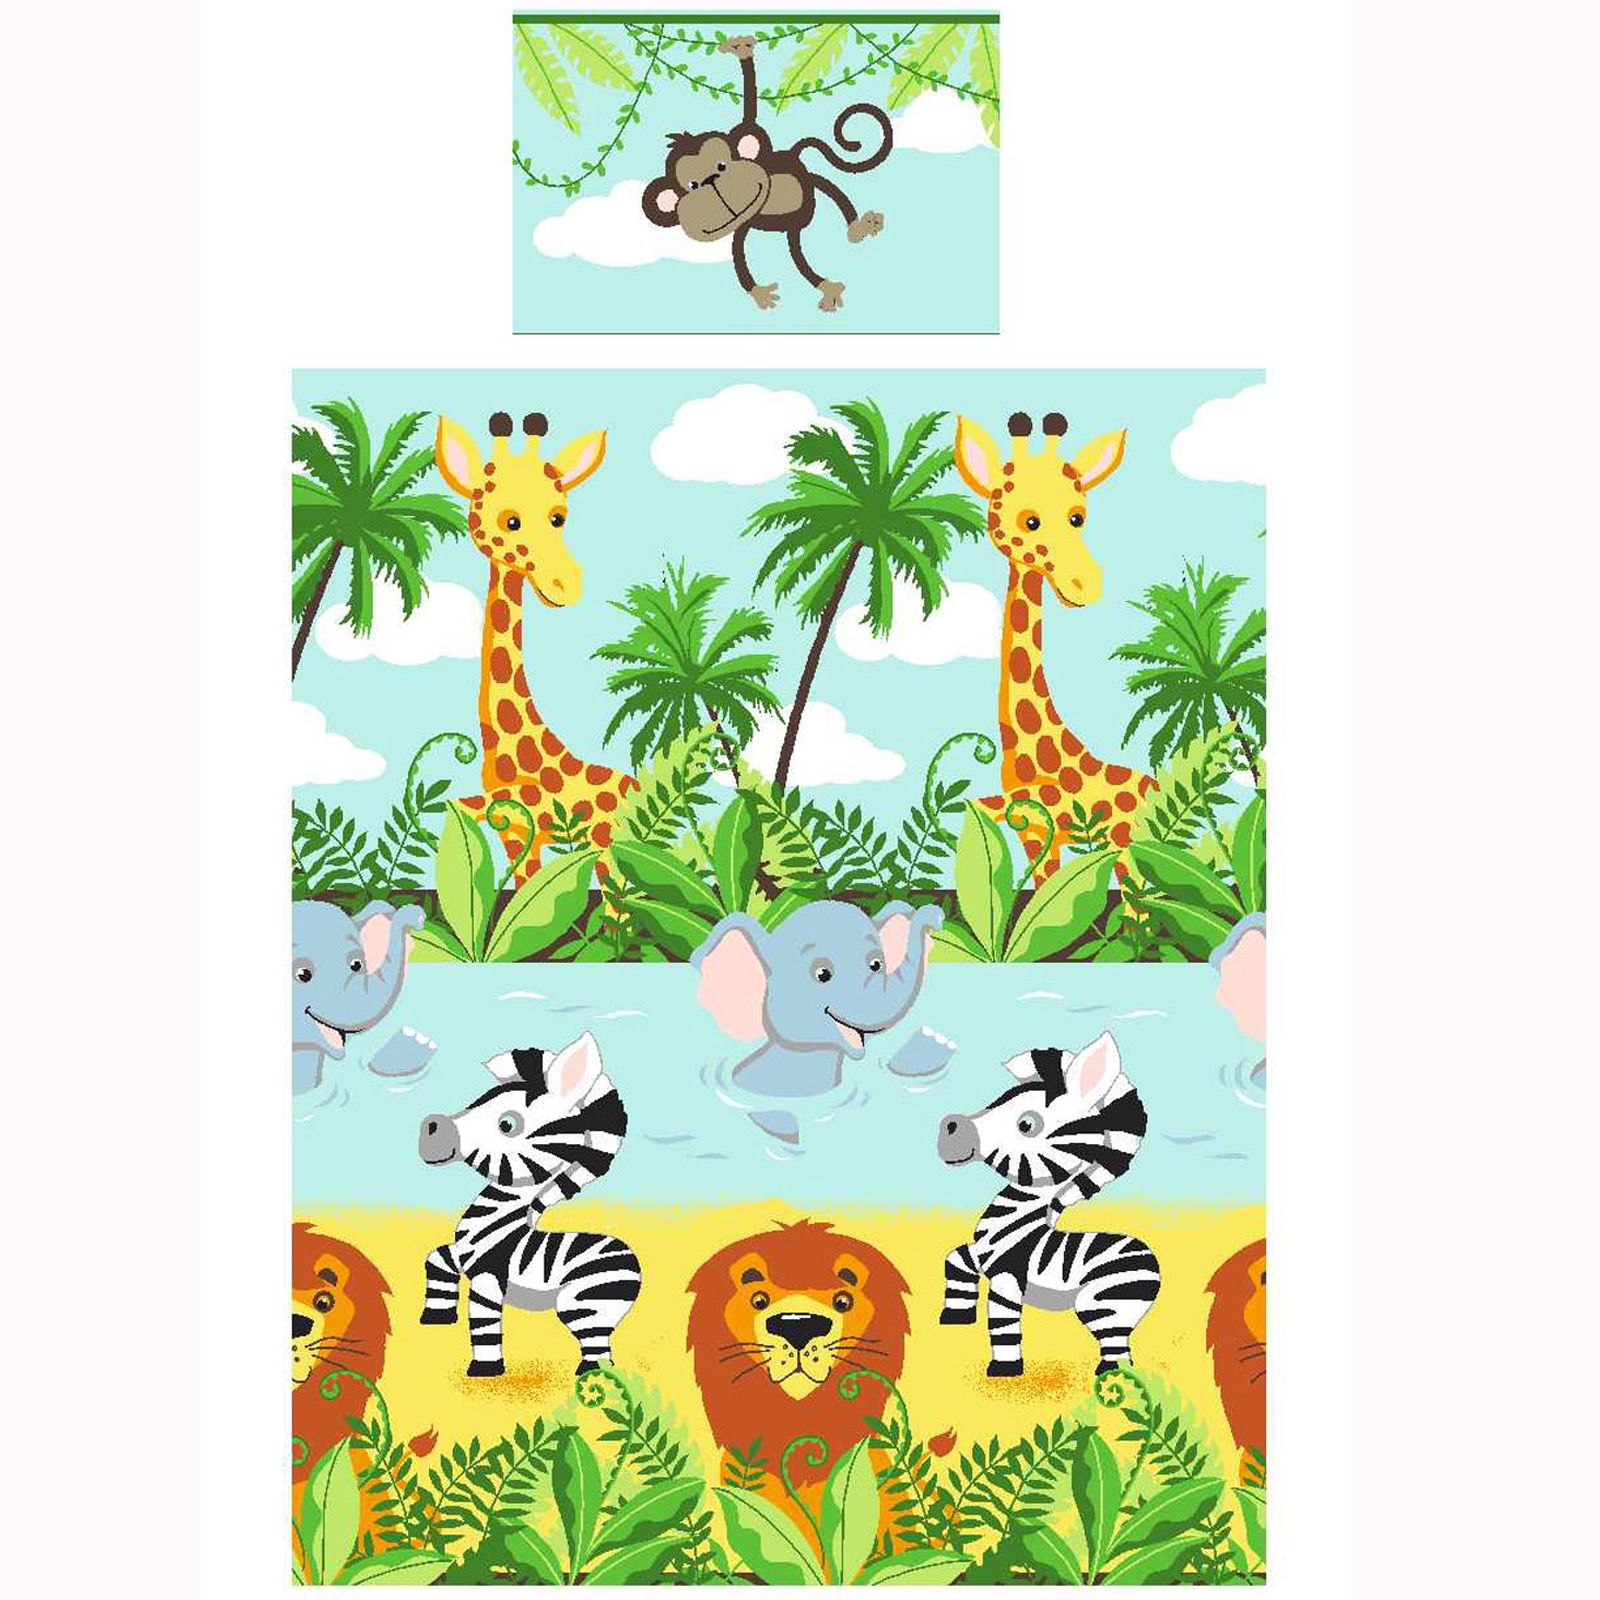 jungle tastic 4 in 1 junior b ndel bettdecke satz bettw sche l we kinderbett ebay. Black Bedroom Furniture Sets. Home Design Ideas